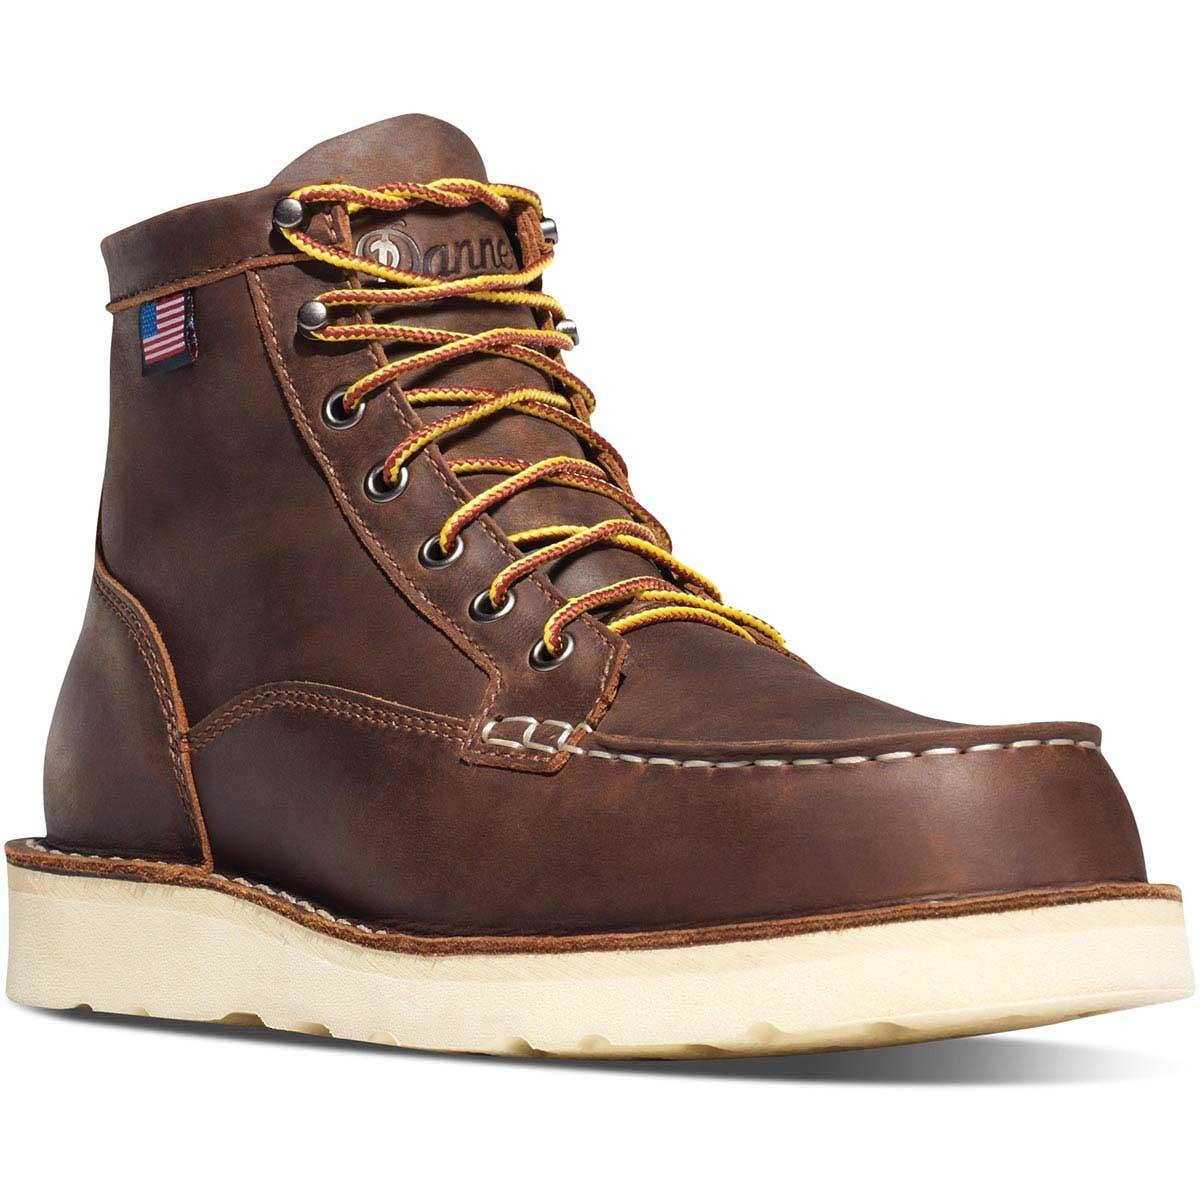 "Danner 6"" Bull Run Moc Toe Work Boot_1.jpg"